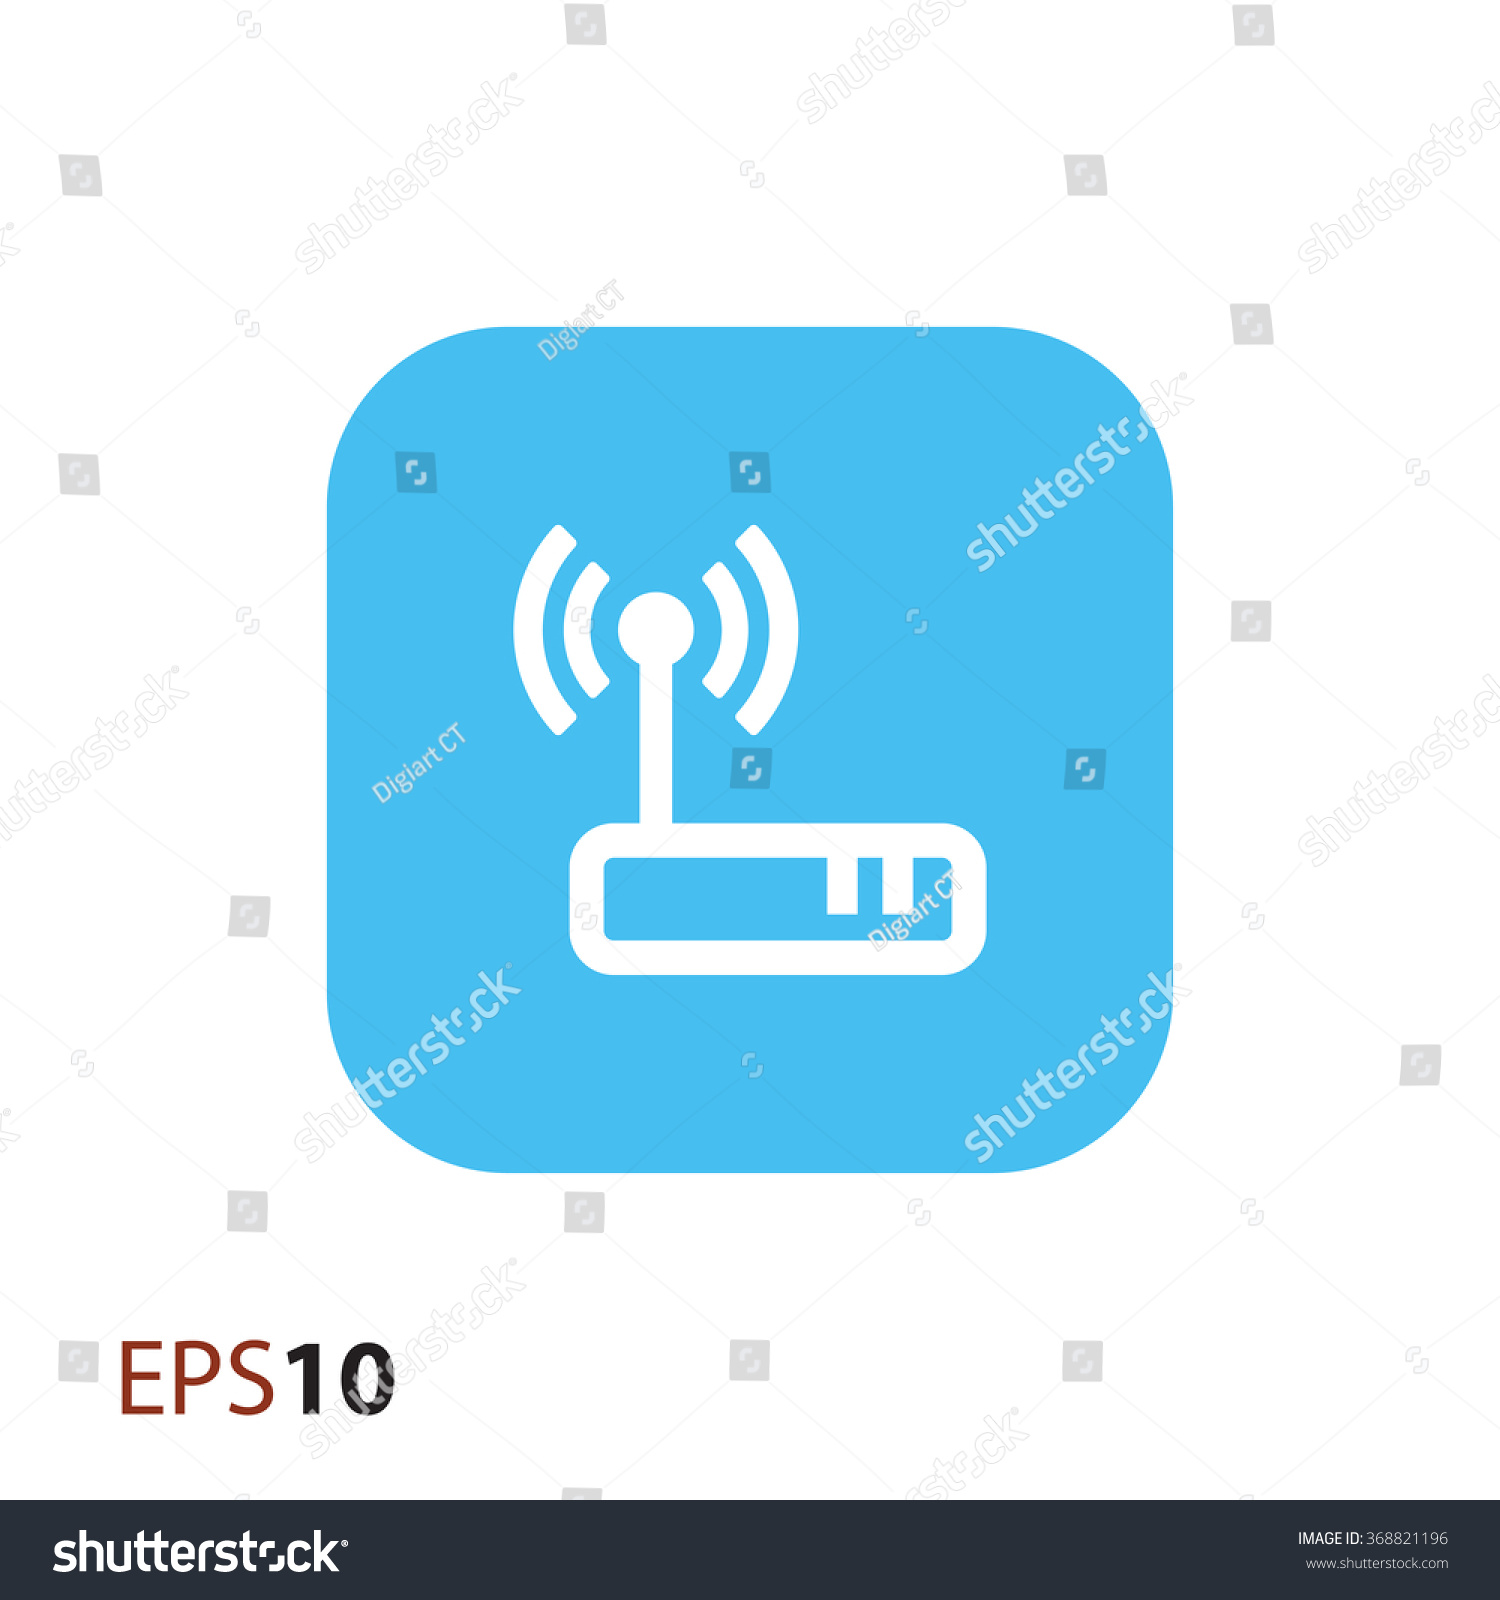 Wireless Modem Icon Web Stock Vector Royalty Free 368821196 Diagram For